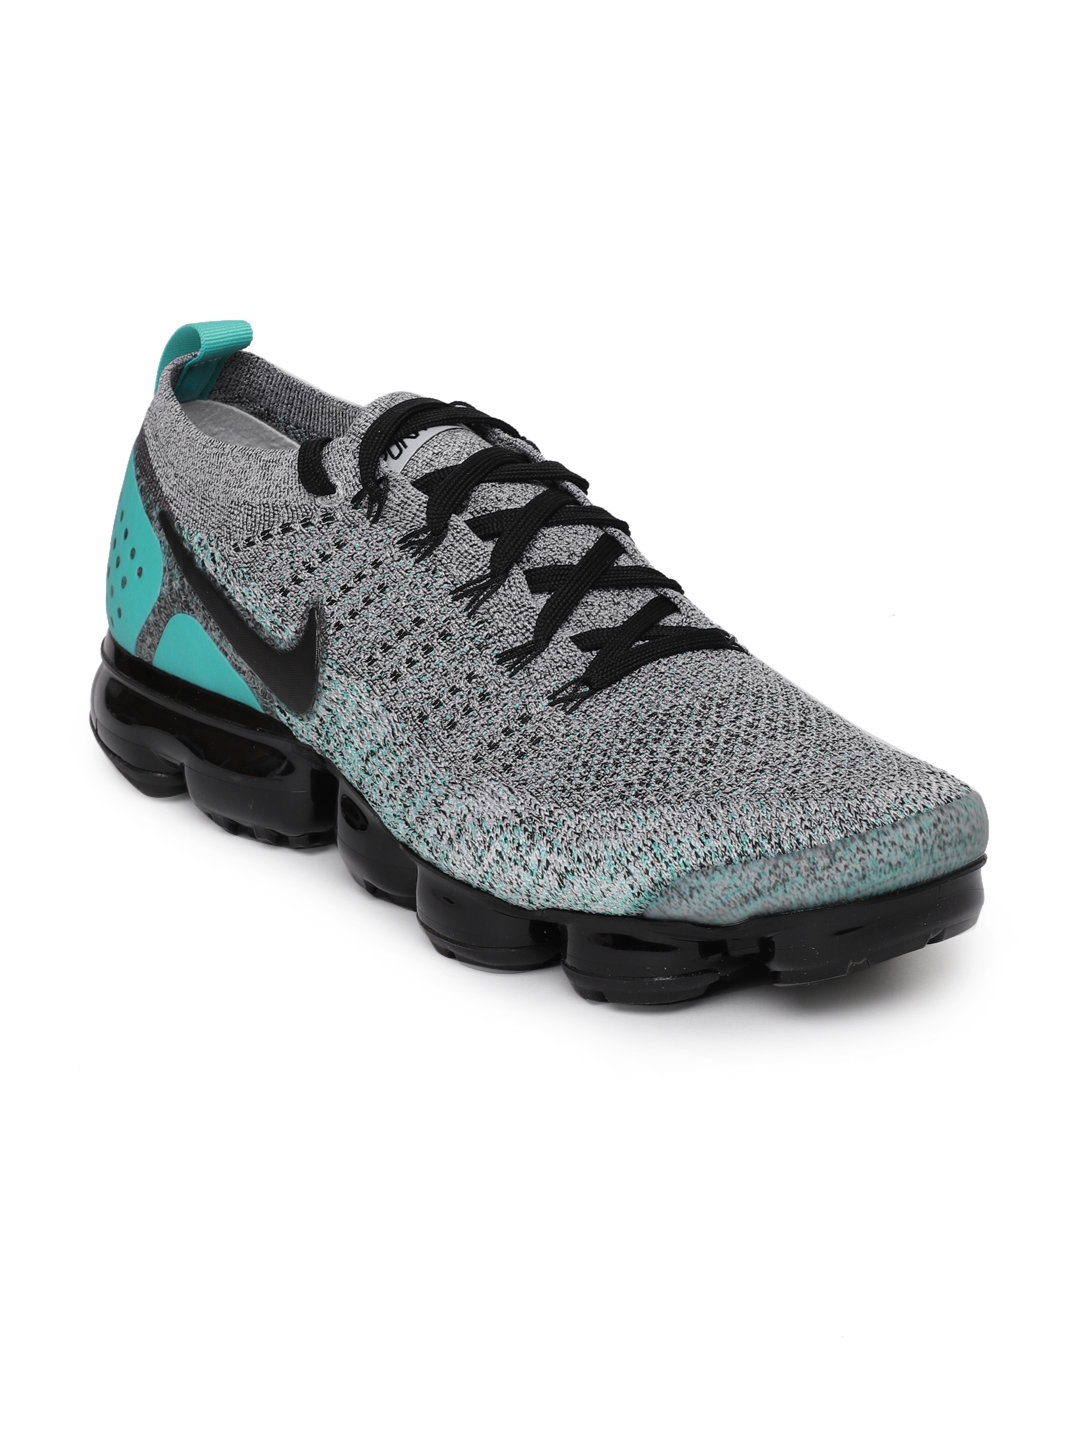 dac5a9d613a1d Buy Nike Men Black   Grey Air VaporMax Flyknit 2 Running Shoes ...